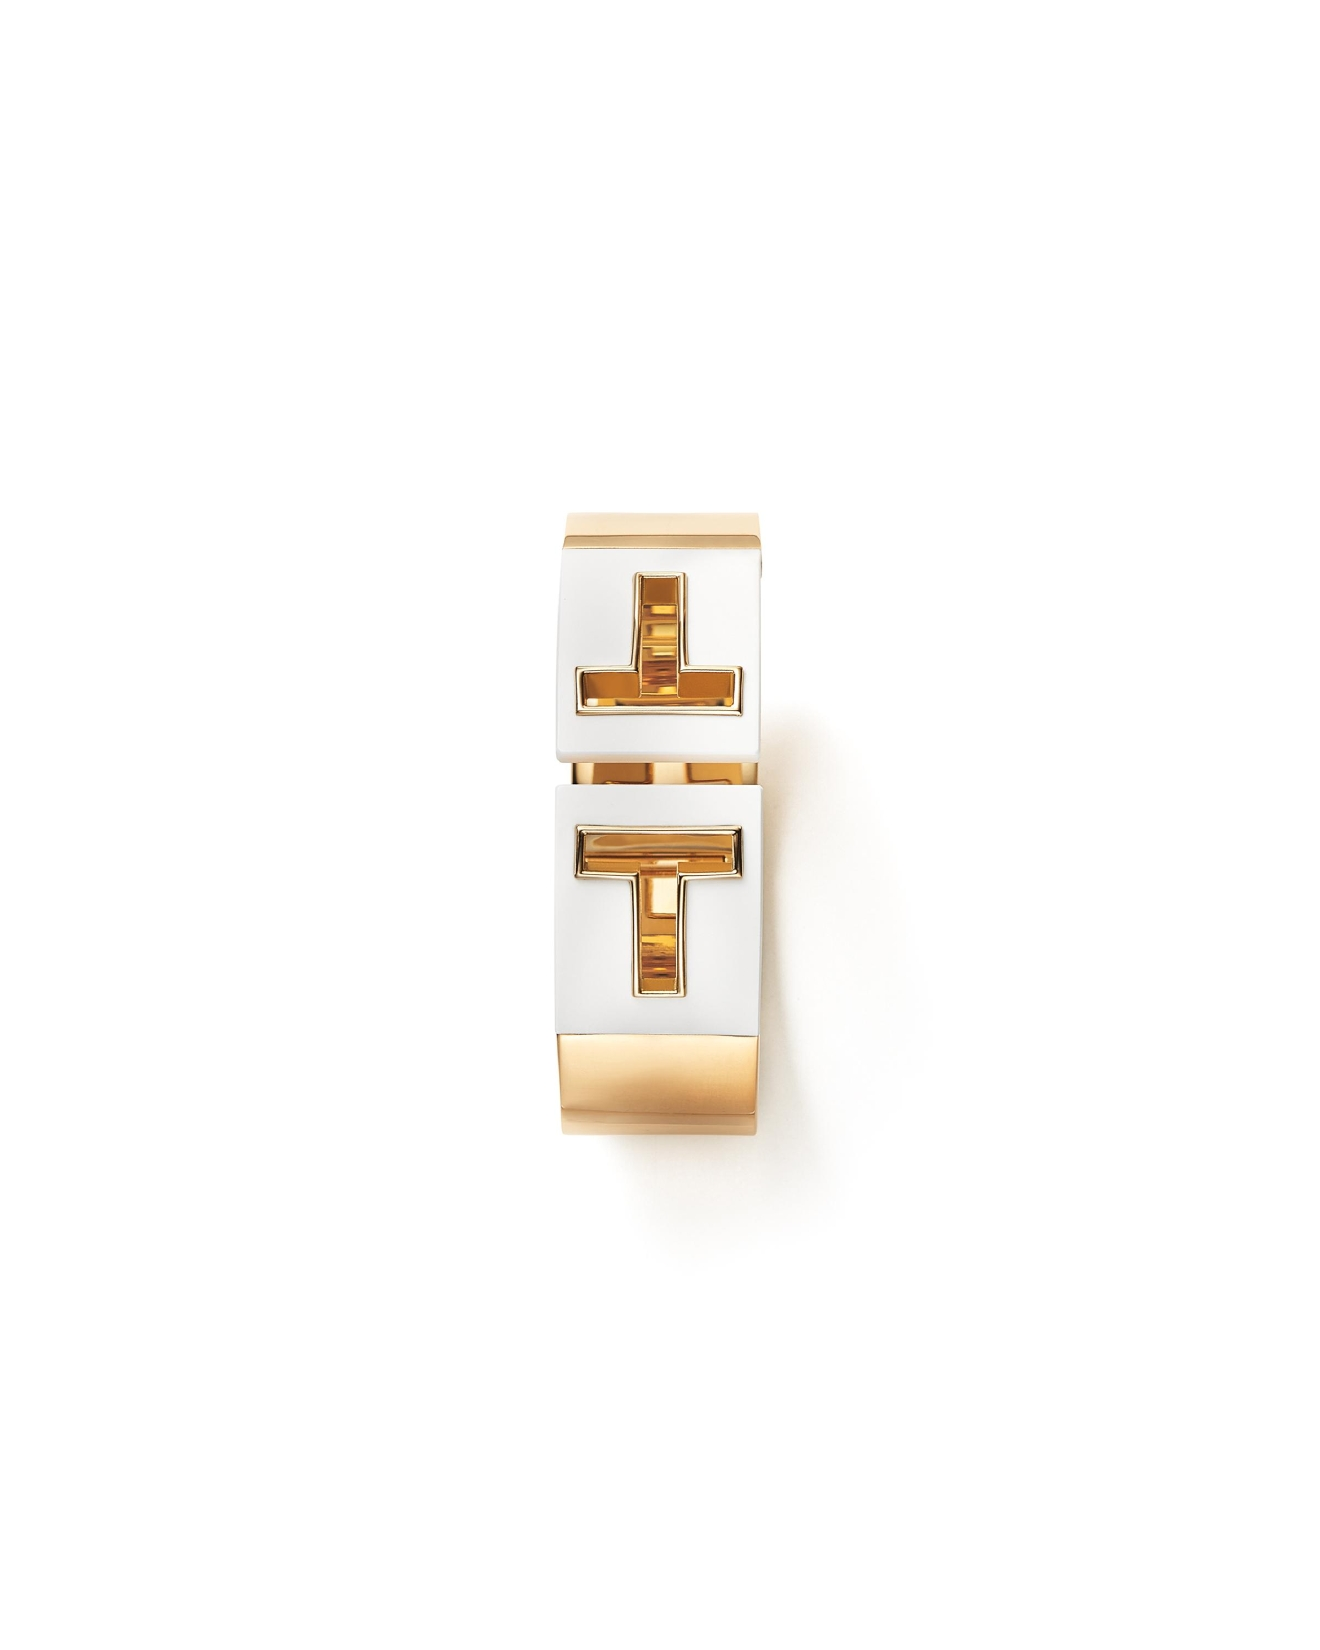 Tiffany T cutout hinged cuff in 18k gold with white ceramic, $8,500, Tiffany & Co., 8045 Leesburg Pike, Vienna, VA (Image: Courtesy Tiffany & Co.)